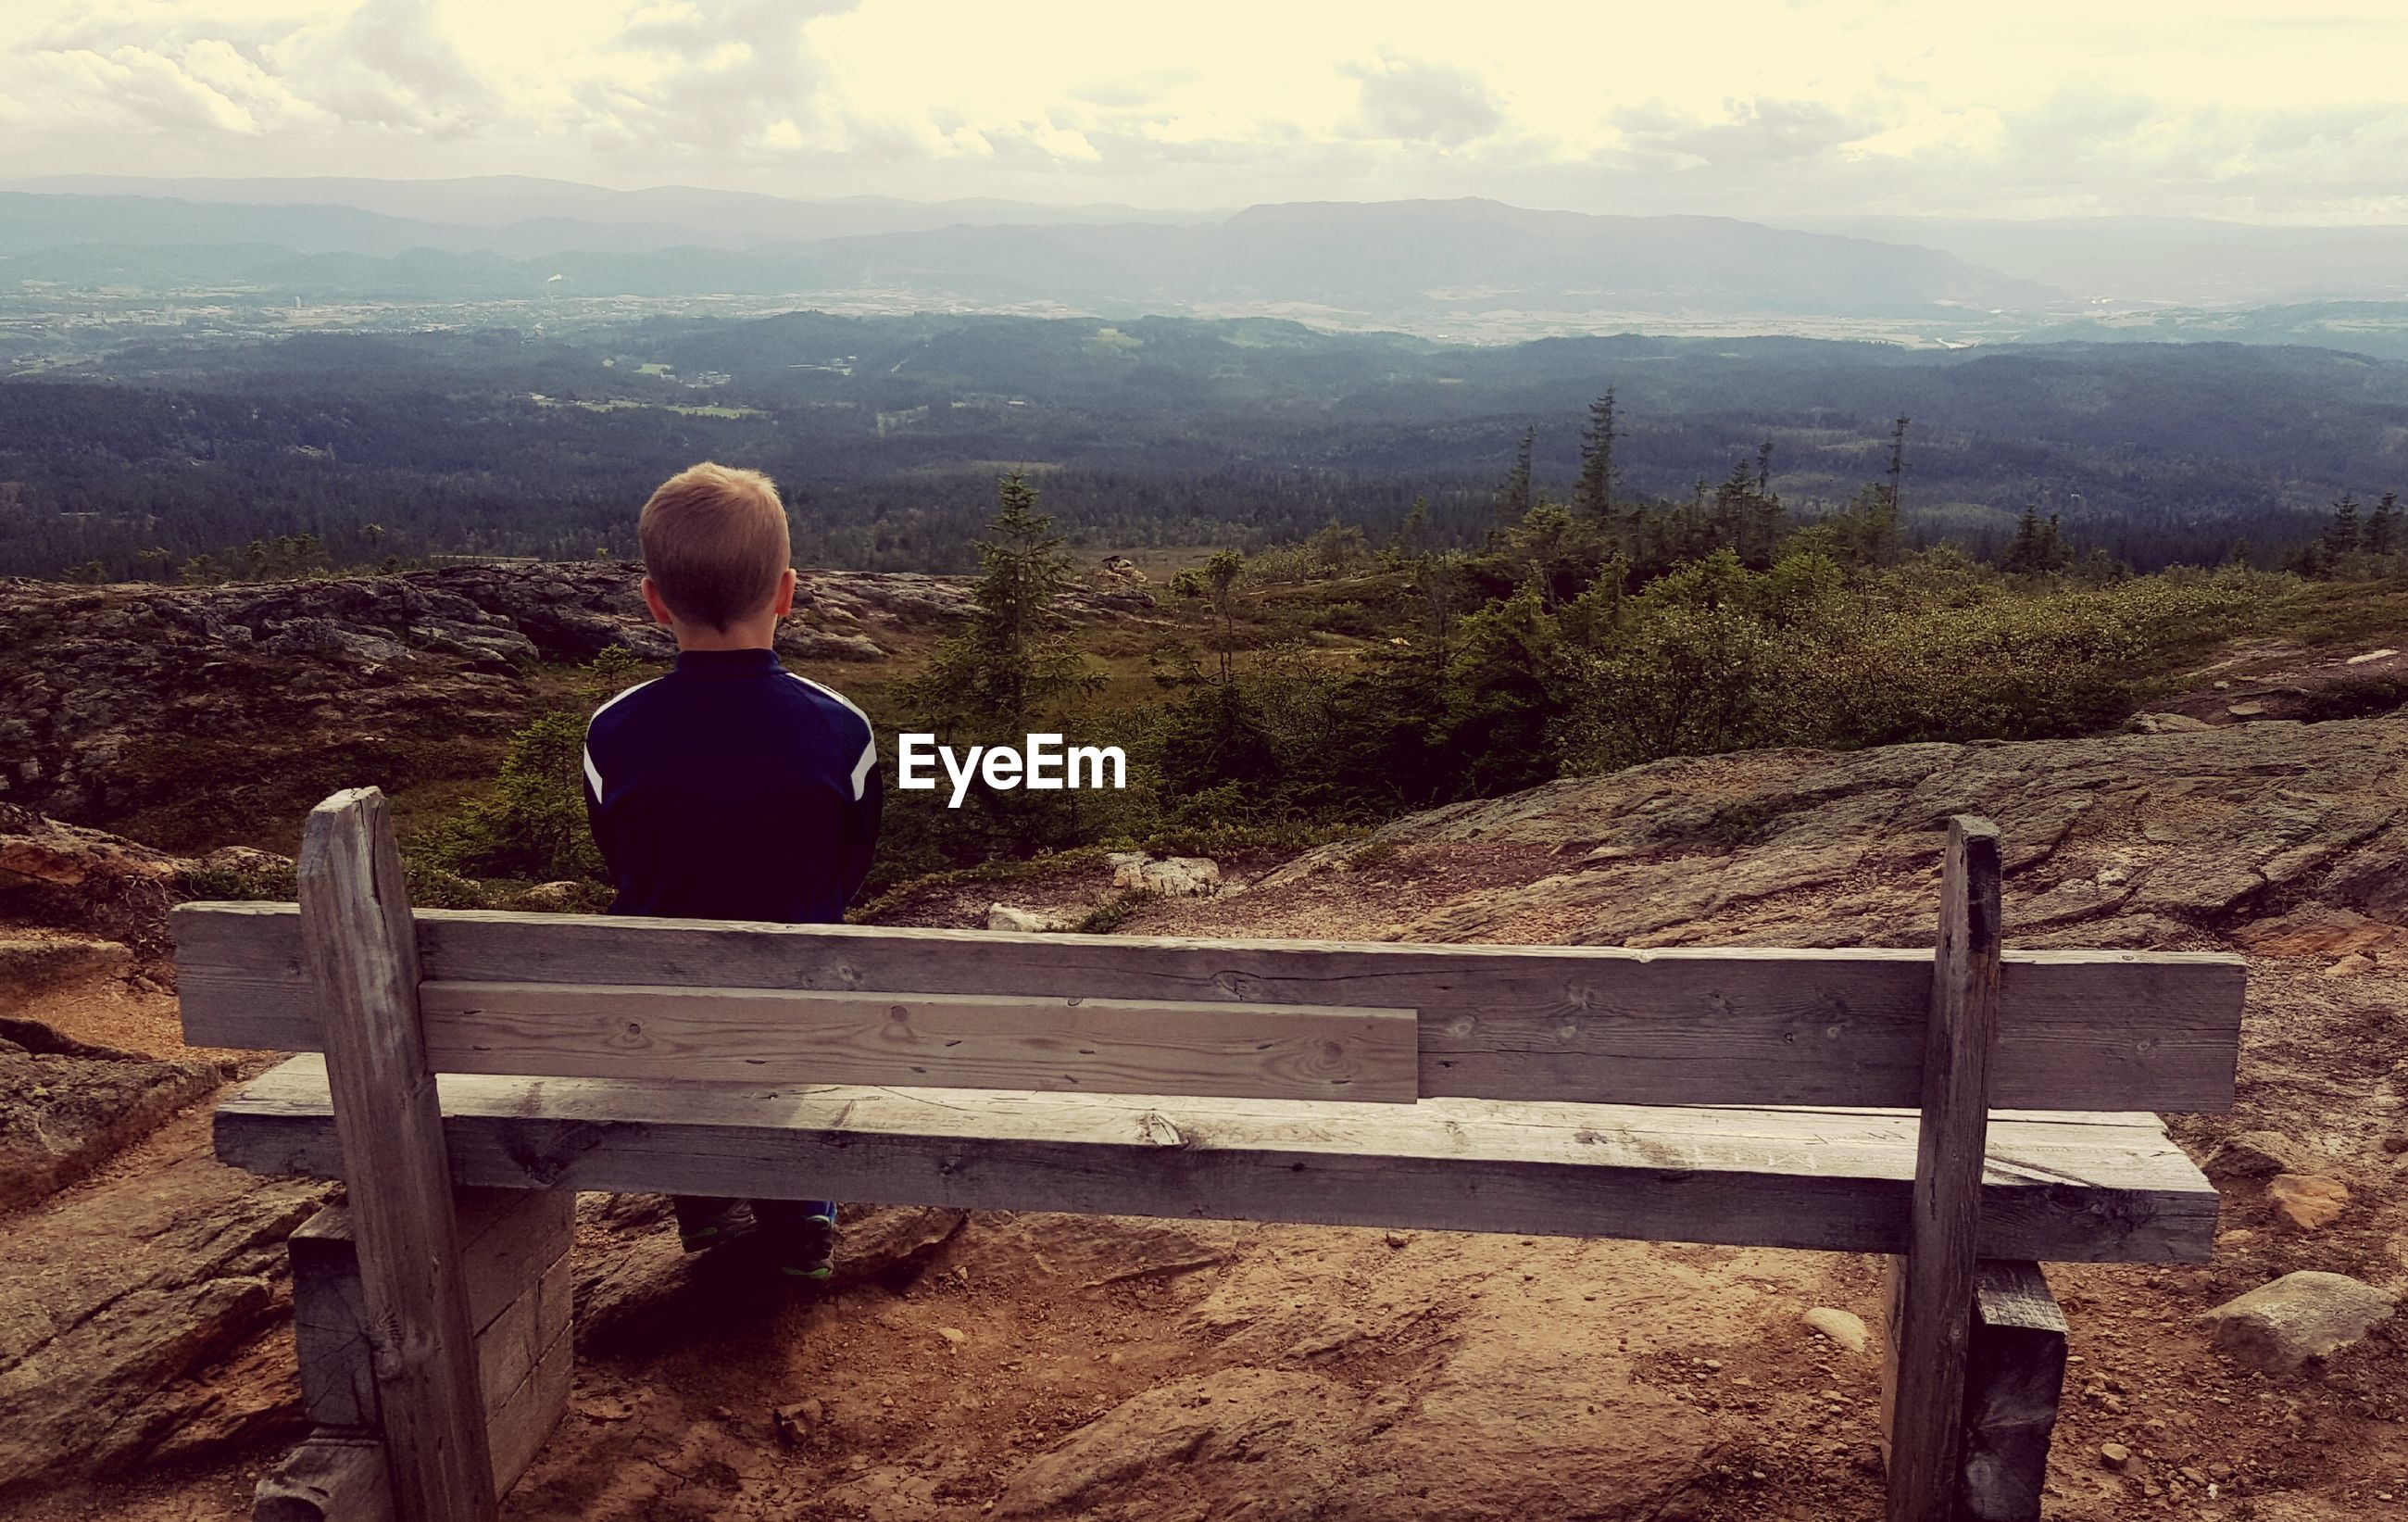 Rear view of boy sitting on bench at mountain against sky